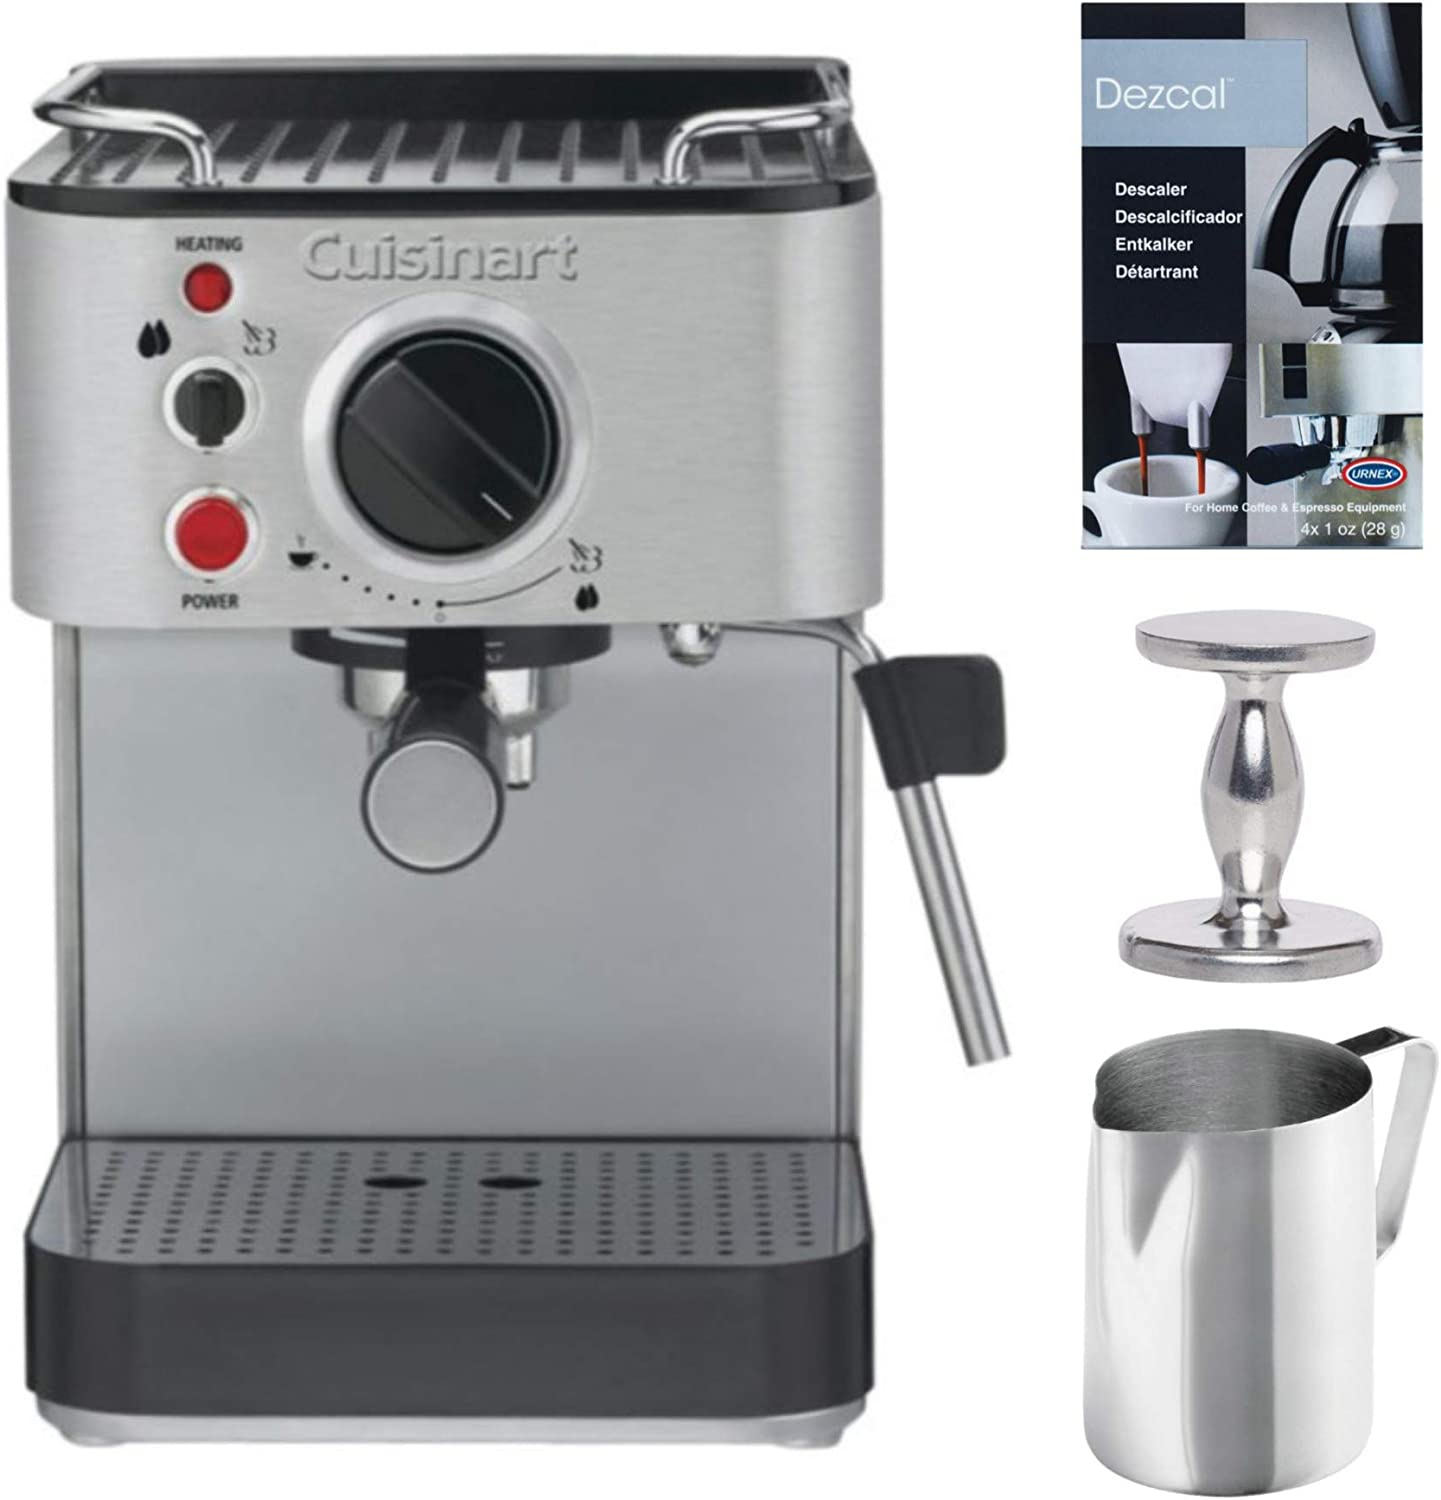 Cuisinart EM-100 Espresso Maker with Stainless Steel Frothing Pitcher, Handheld Tamper, and Descaling Powder Bundle (4 Items)